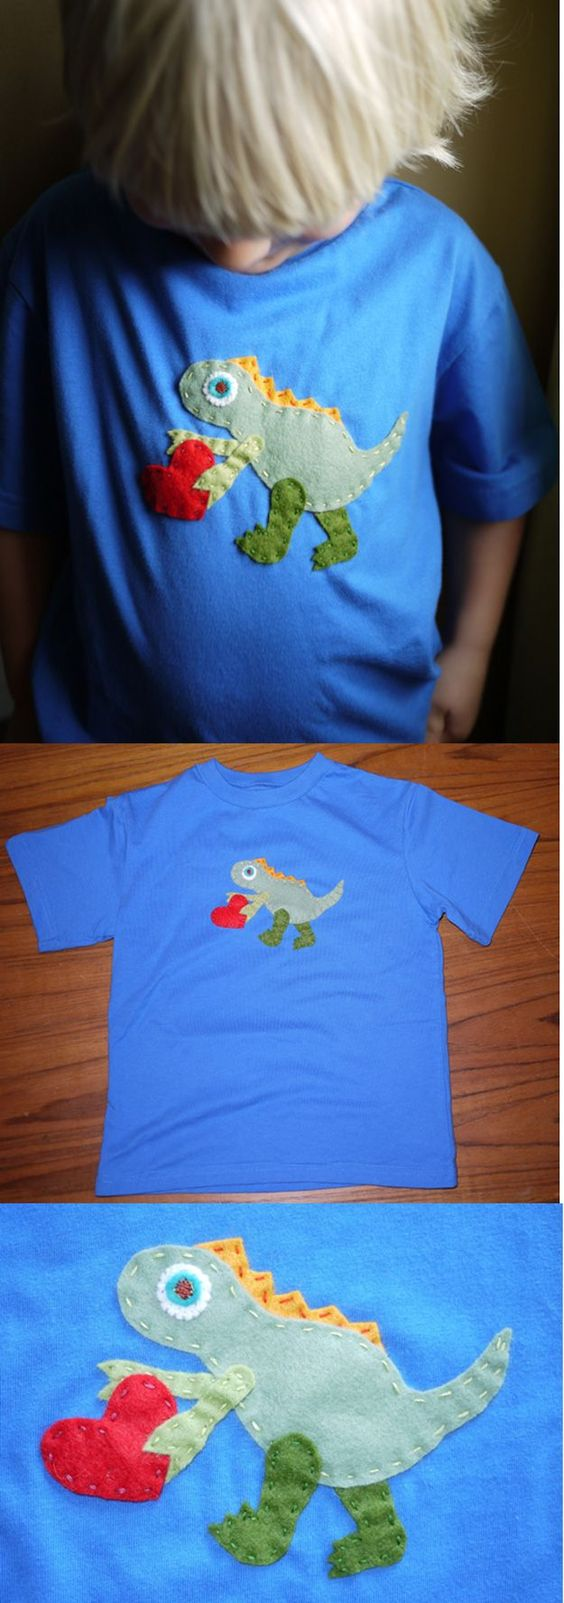 Easy Homemade Tshirt Craft for Boys | Dinosaur Shirt by DIY Ready at www.diyready.com/15-diy-clothes-for-kids-you-should-make/